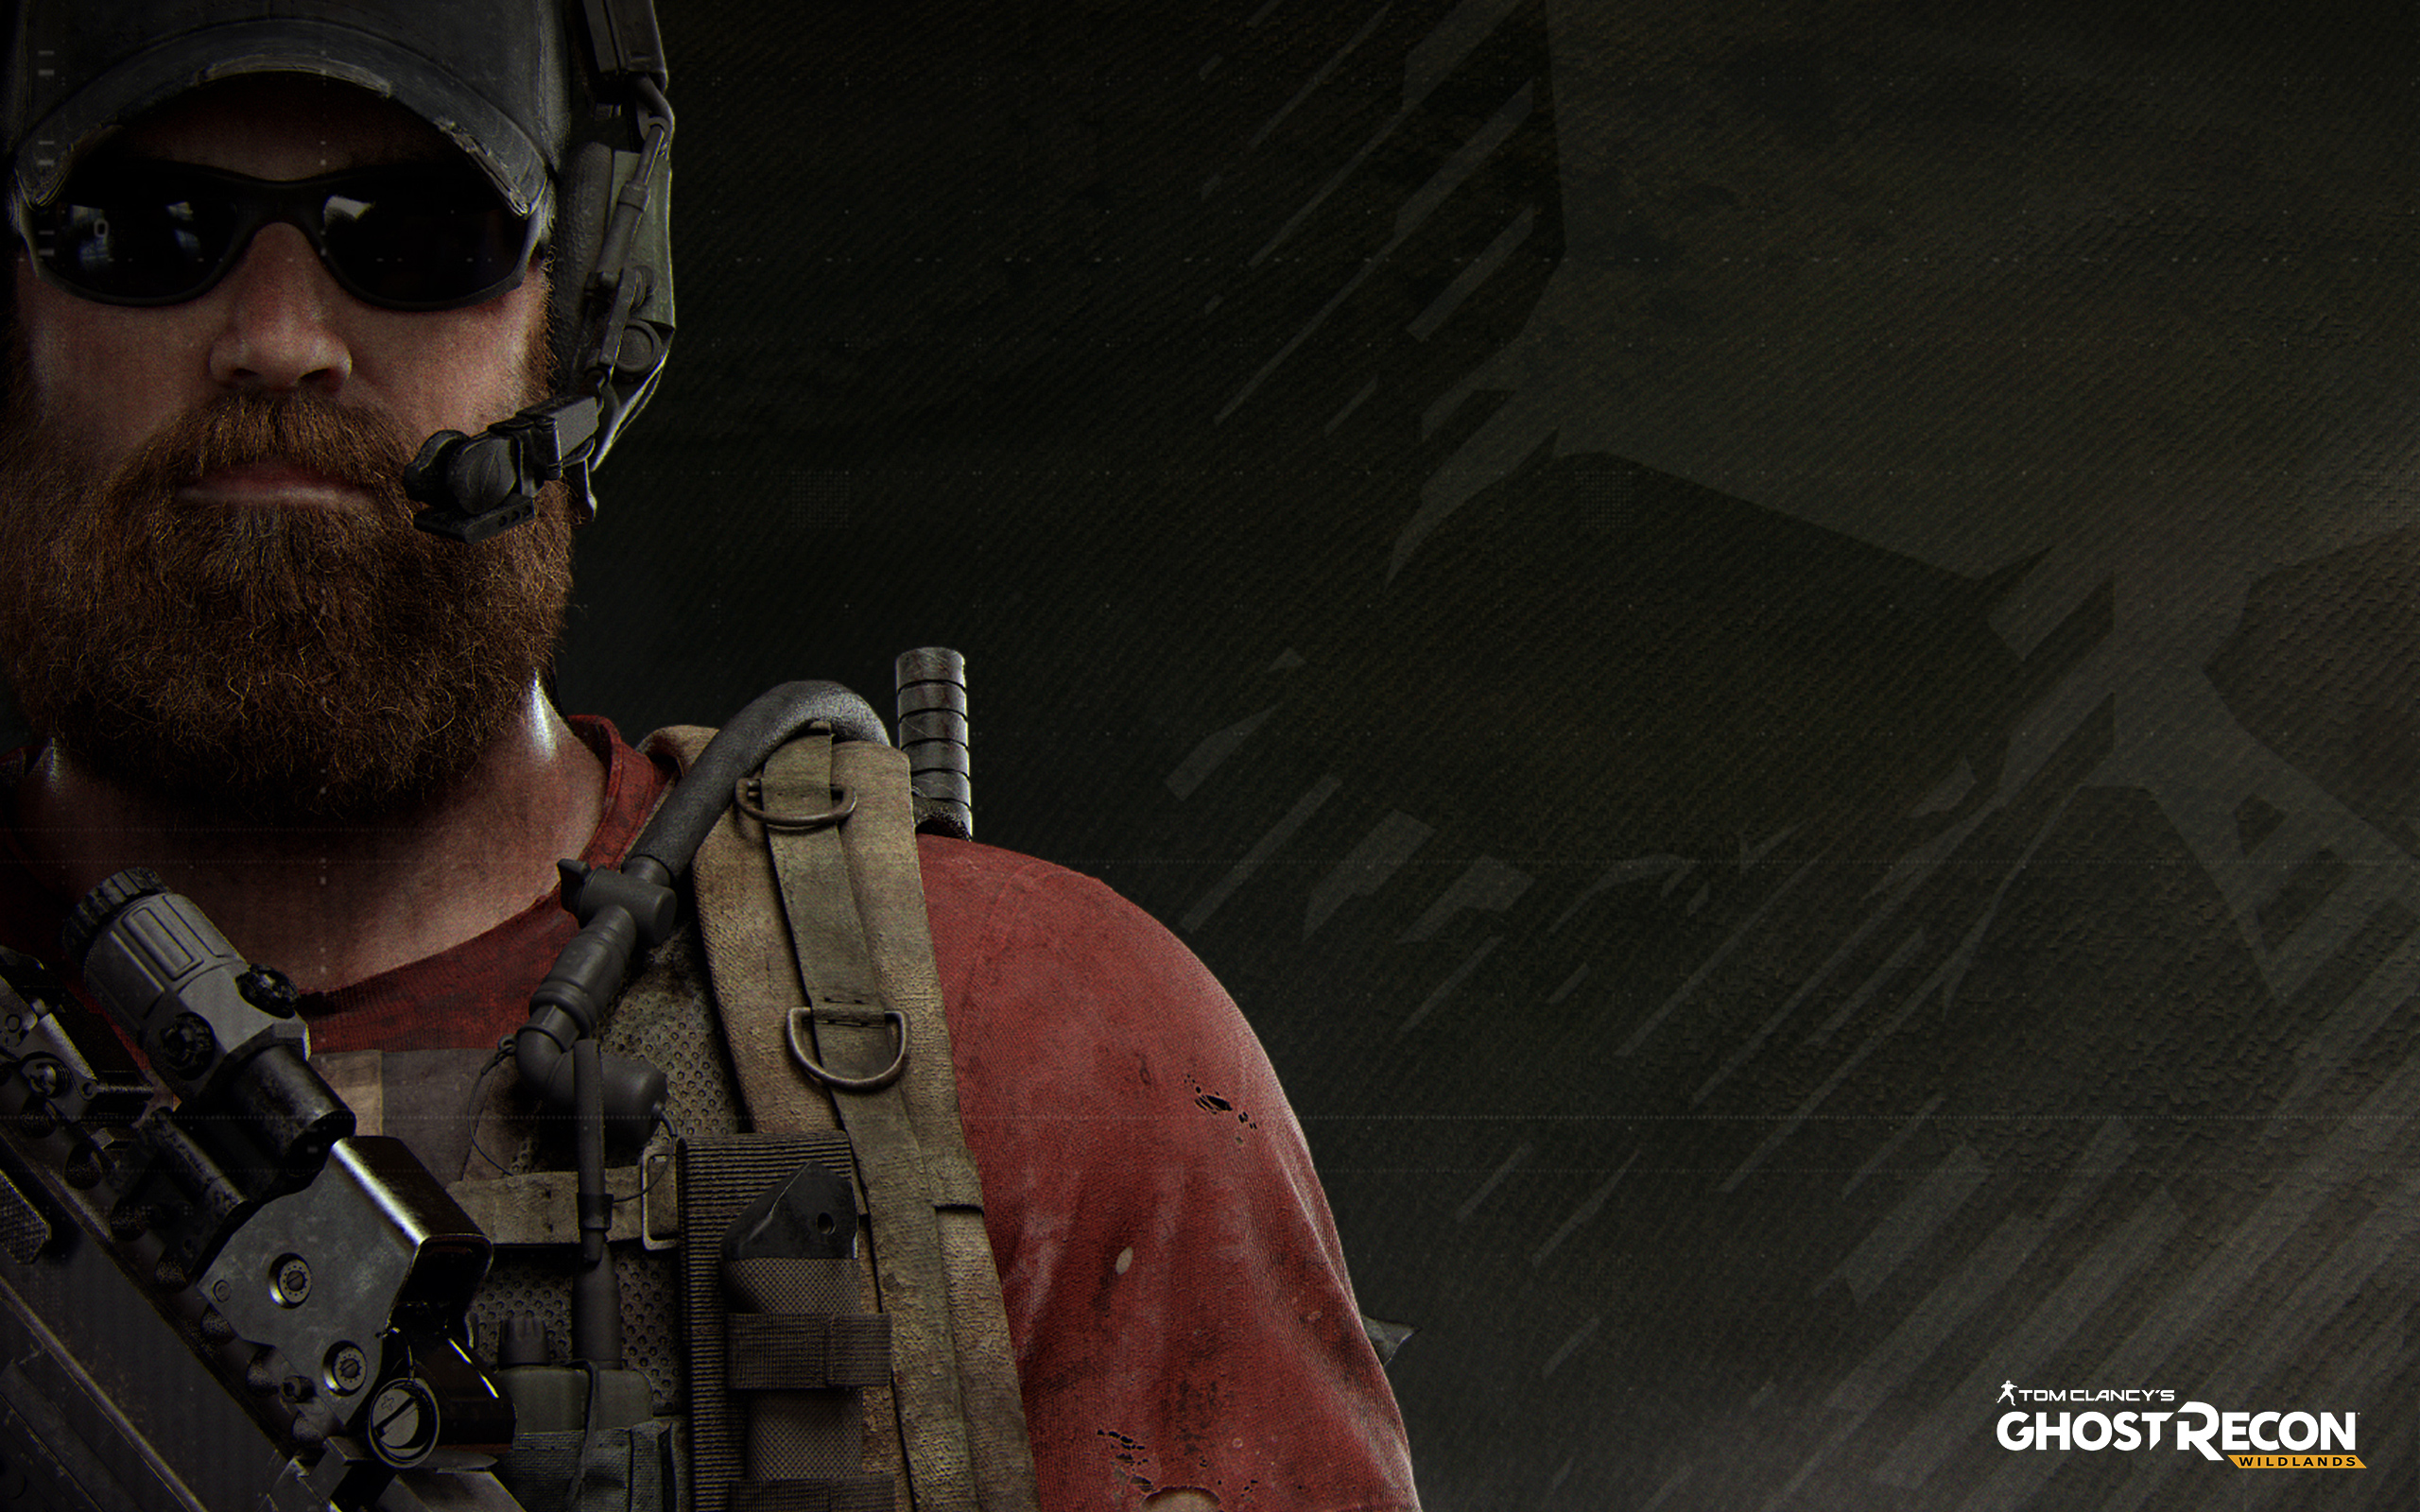 Nomad Tom Clancys Ghost Recon Wildlands Hd Games 4k Wallpapers